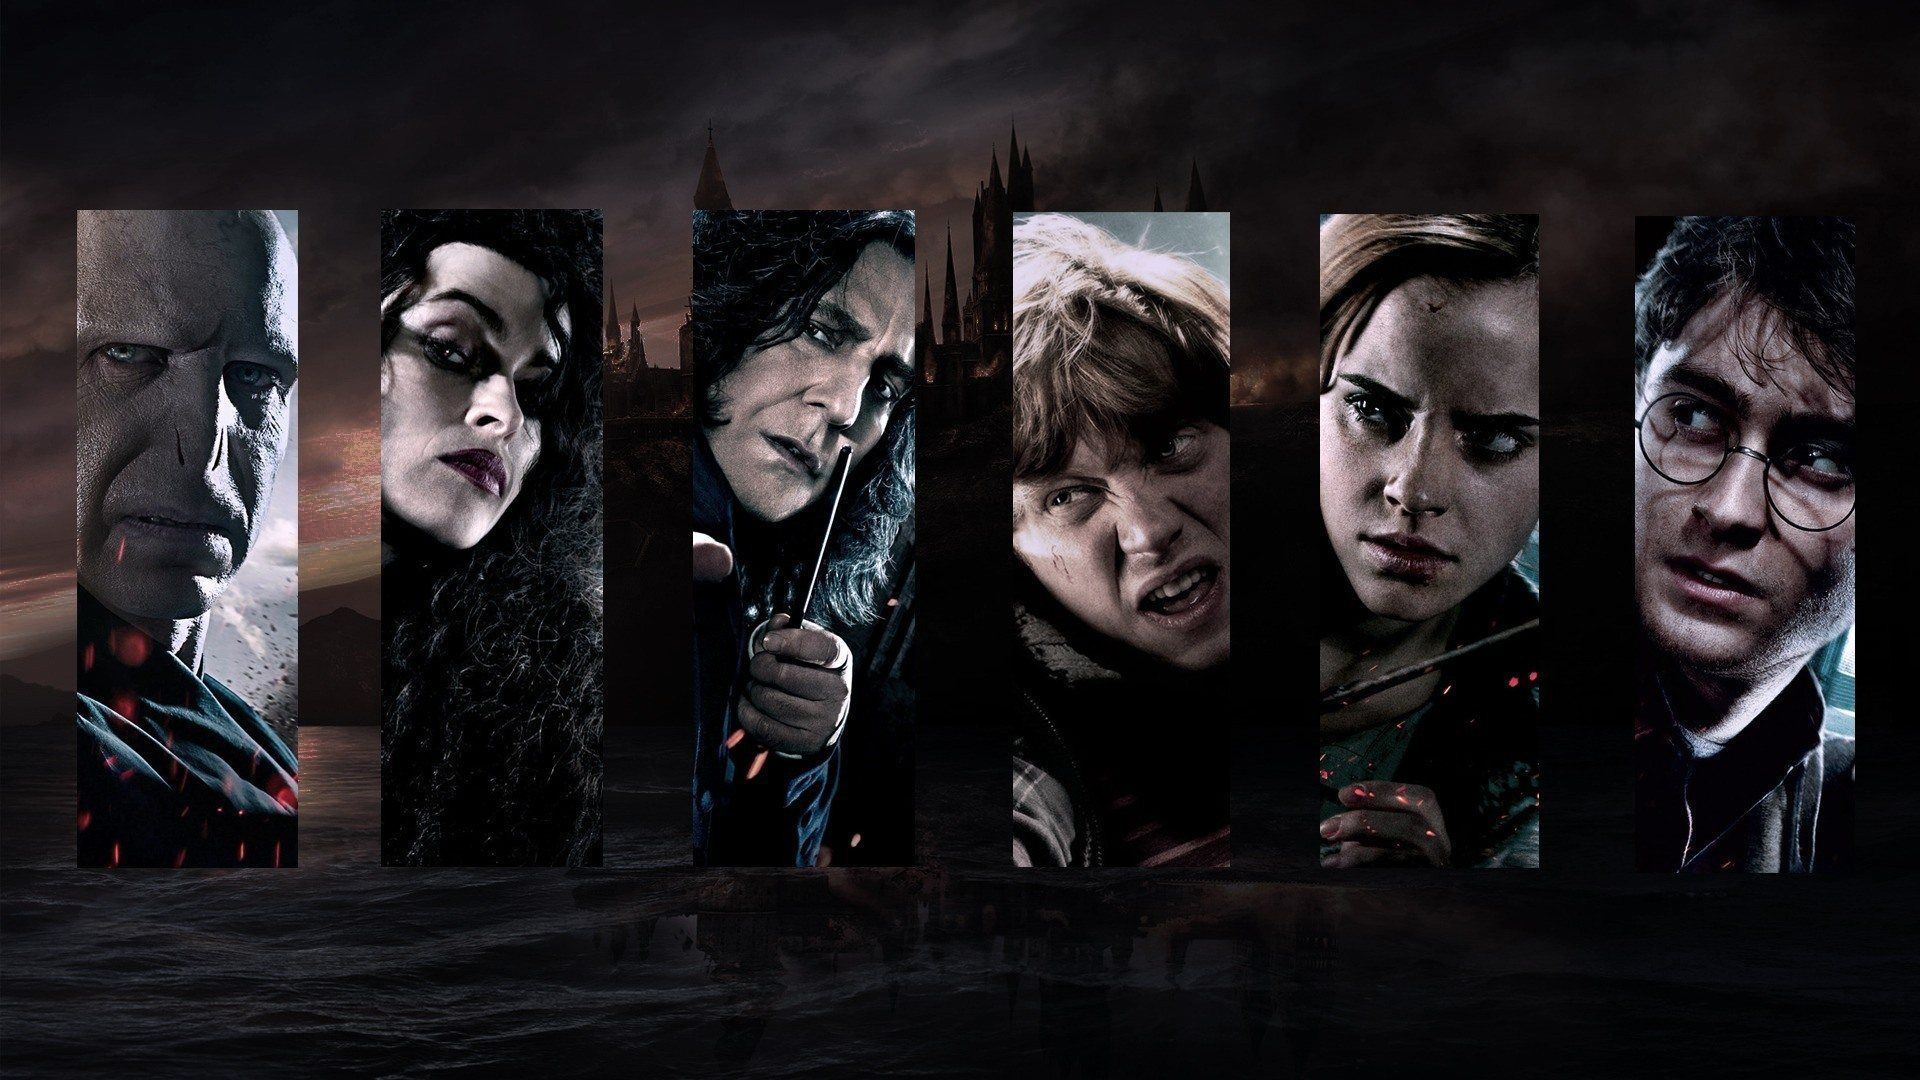 Download Wallpaper Harry Potter Bright - 6a0e12c52e4bde7af75dfd0ac8b5af88  You Should Have_906418.jpg